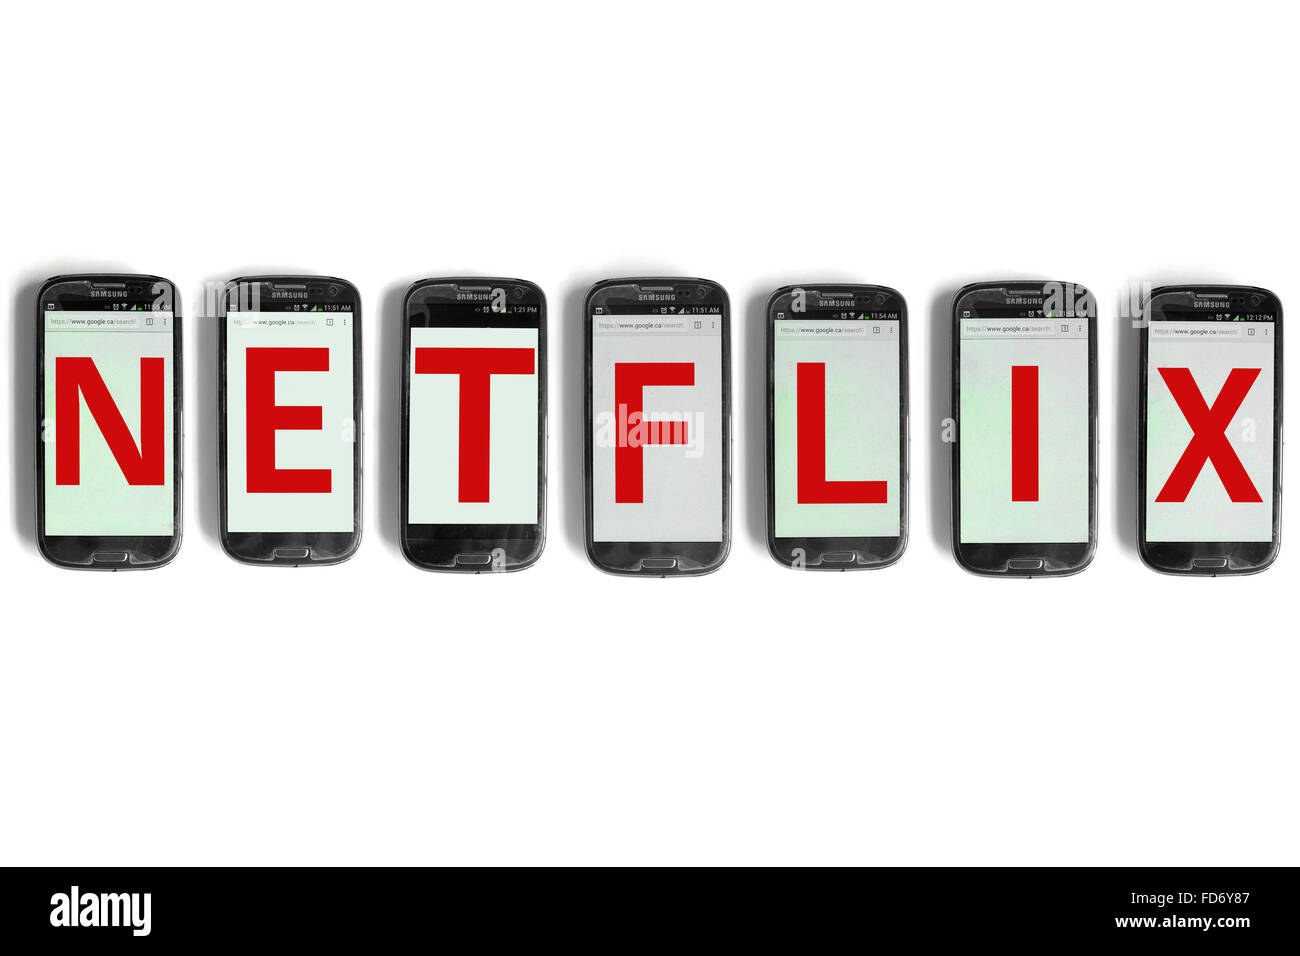 Netflix spelled on the screens of smartphones photographed against a white background. - Stock Image